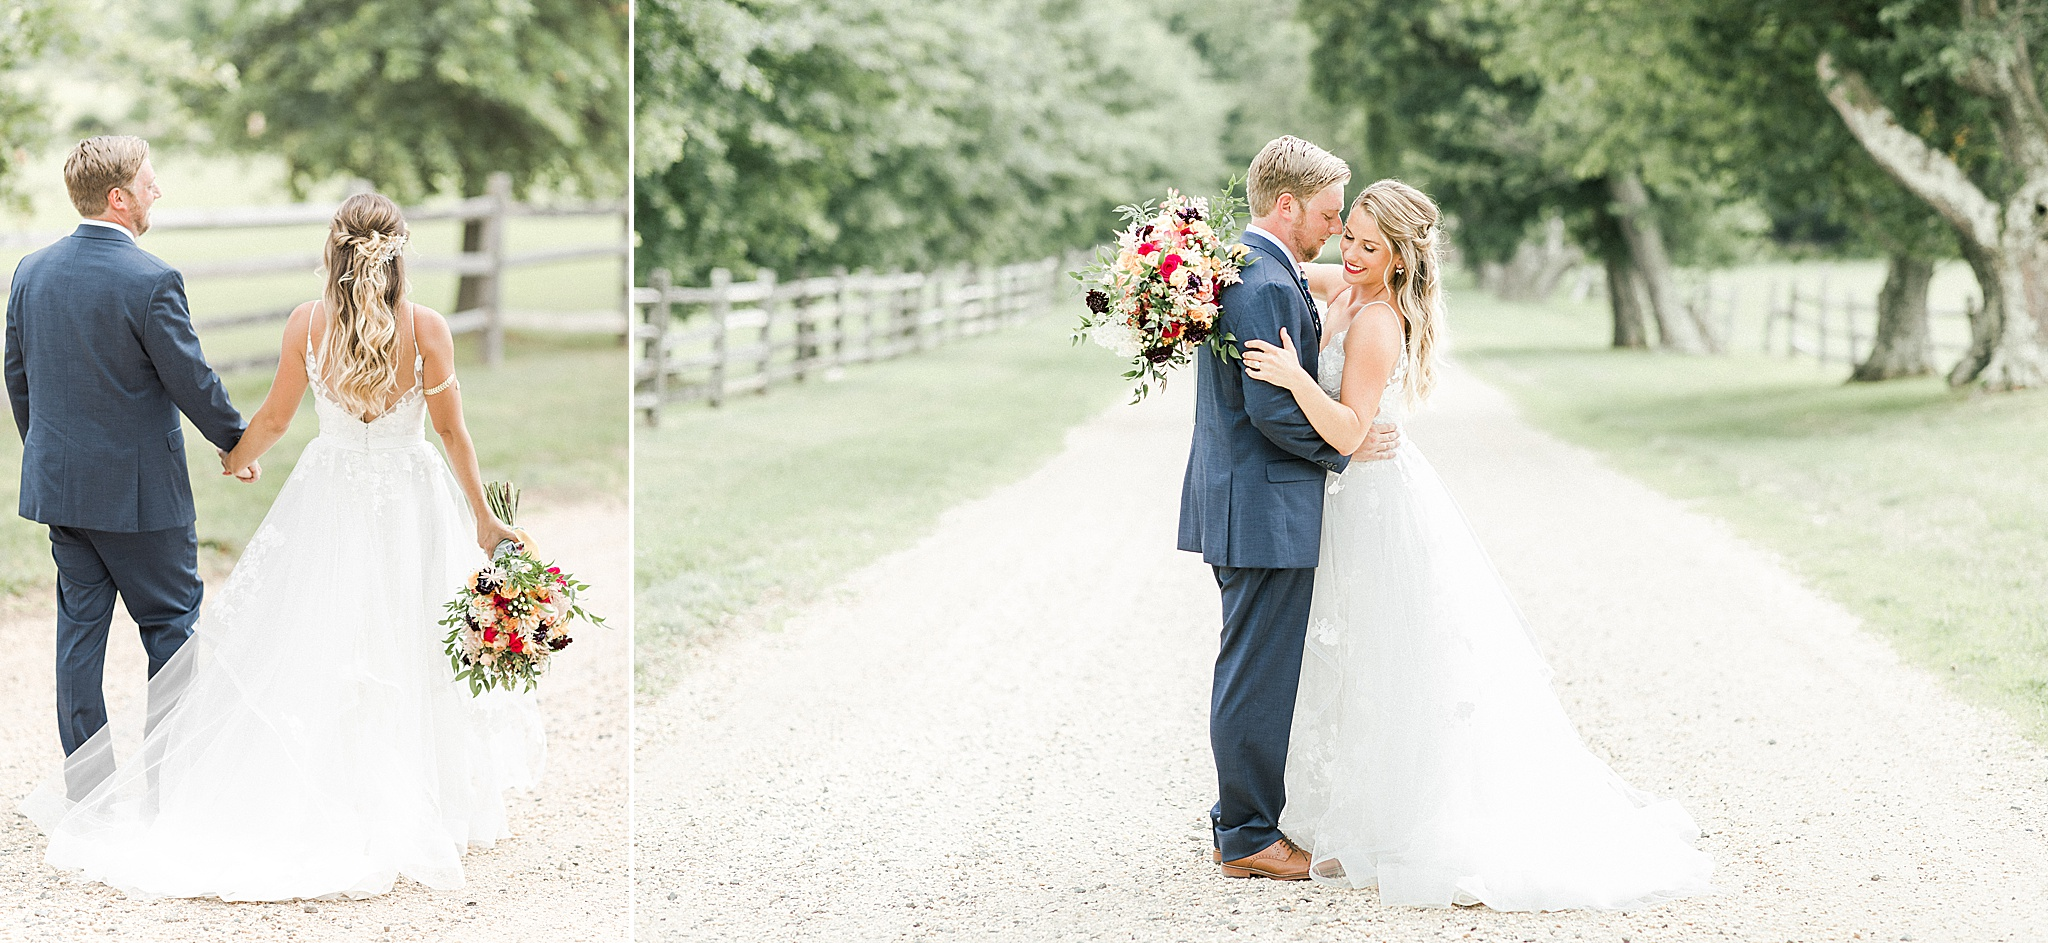 Bayonet Farm wedding day planned by Blue Mae Events, Ashley Mac Gets Married, NJ wedding day, New Jersey wedding day, outdoor New Jersey wedding day, boho chic wedding inspiration